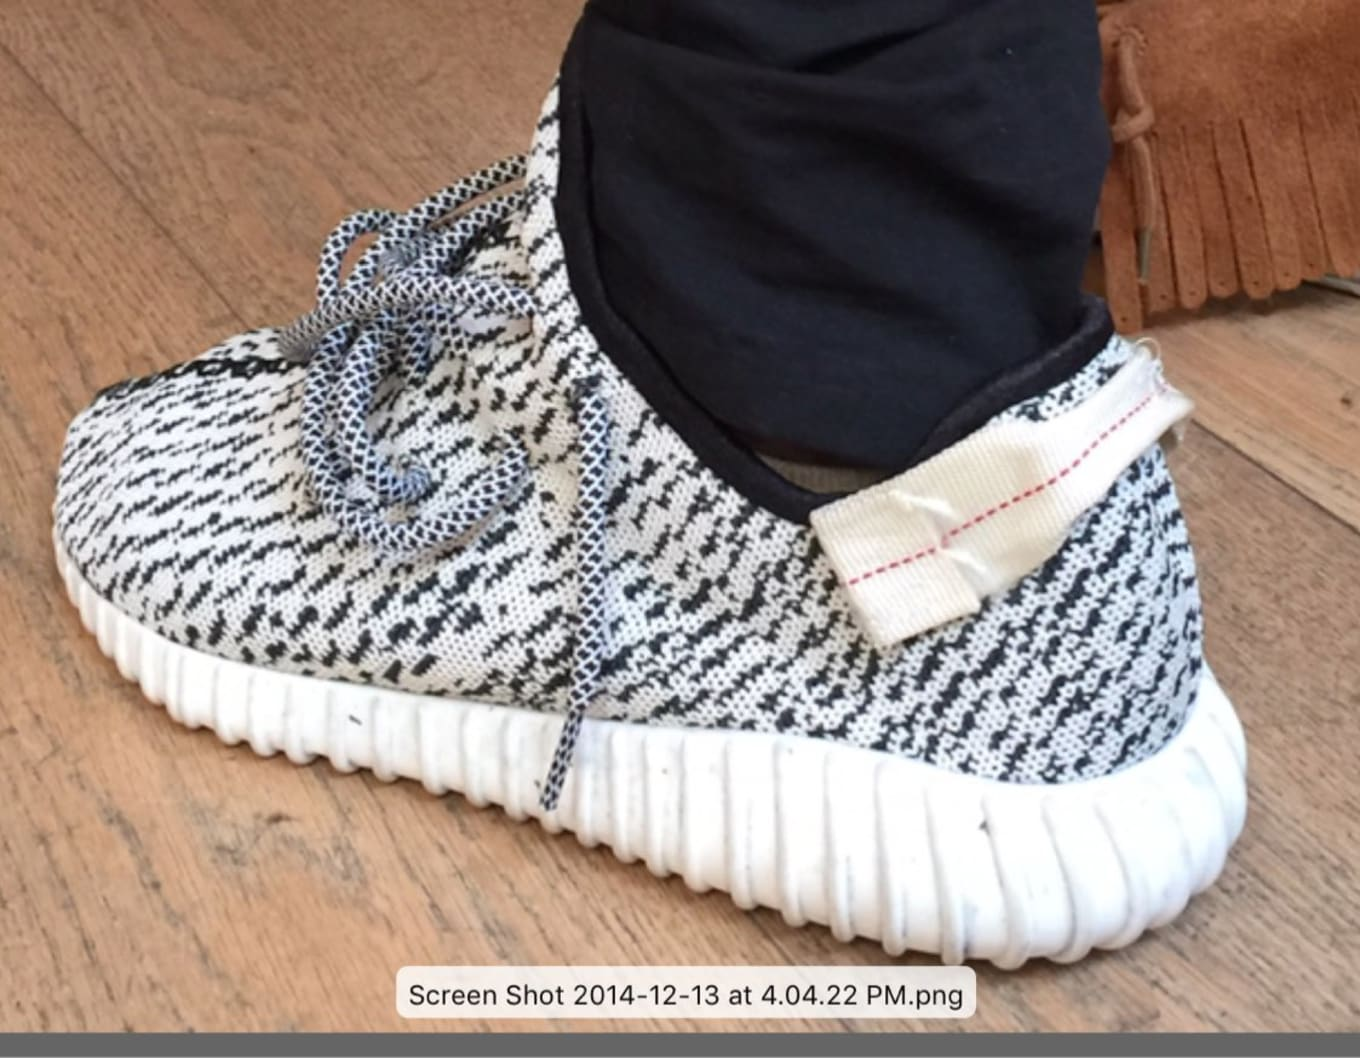 e2c1a020bafd1 Kanye West Shares the Original Yeezy Boost 350 Sample